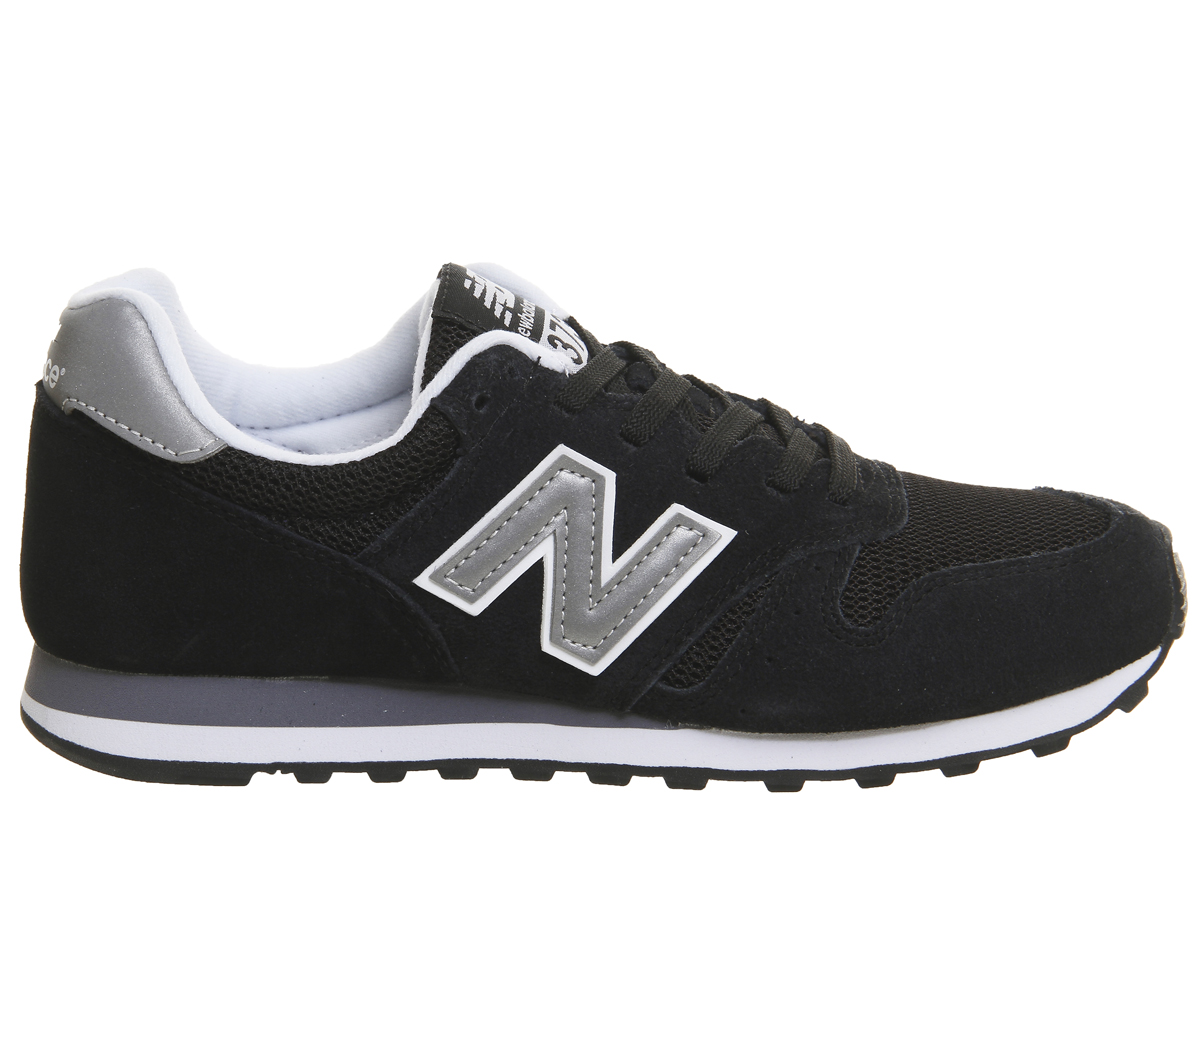 Mens New Balance 373 Trainers BLACK SILVER Trainers Schuhes